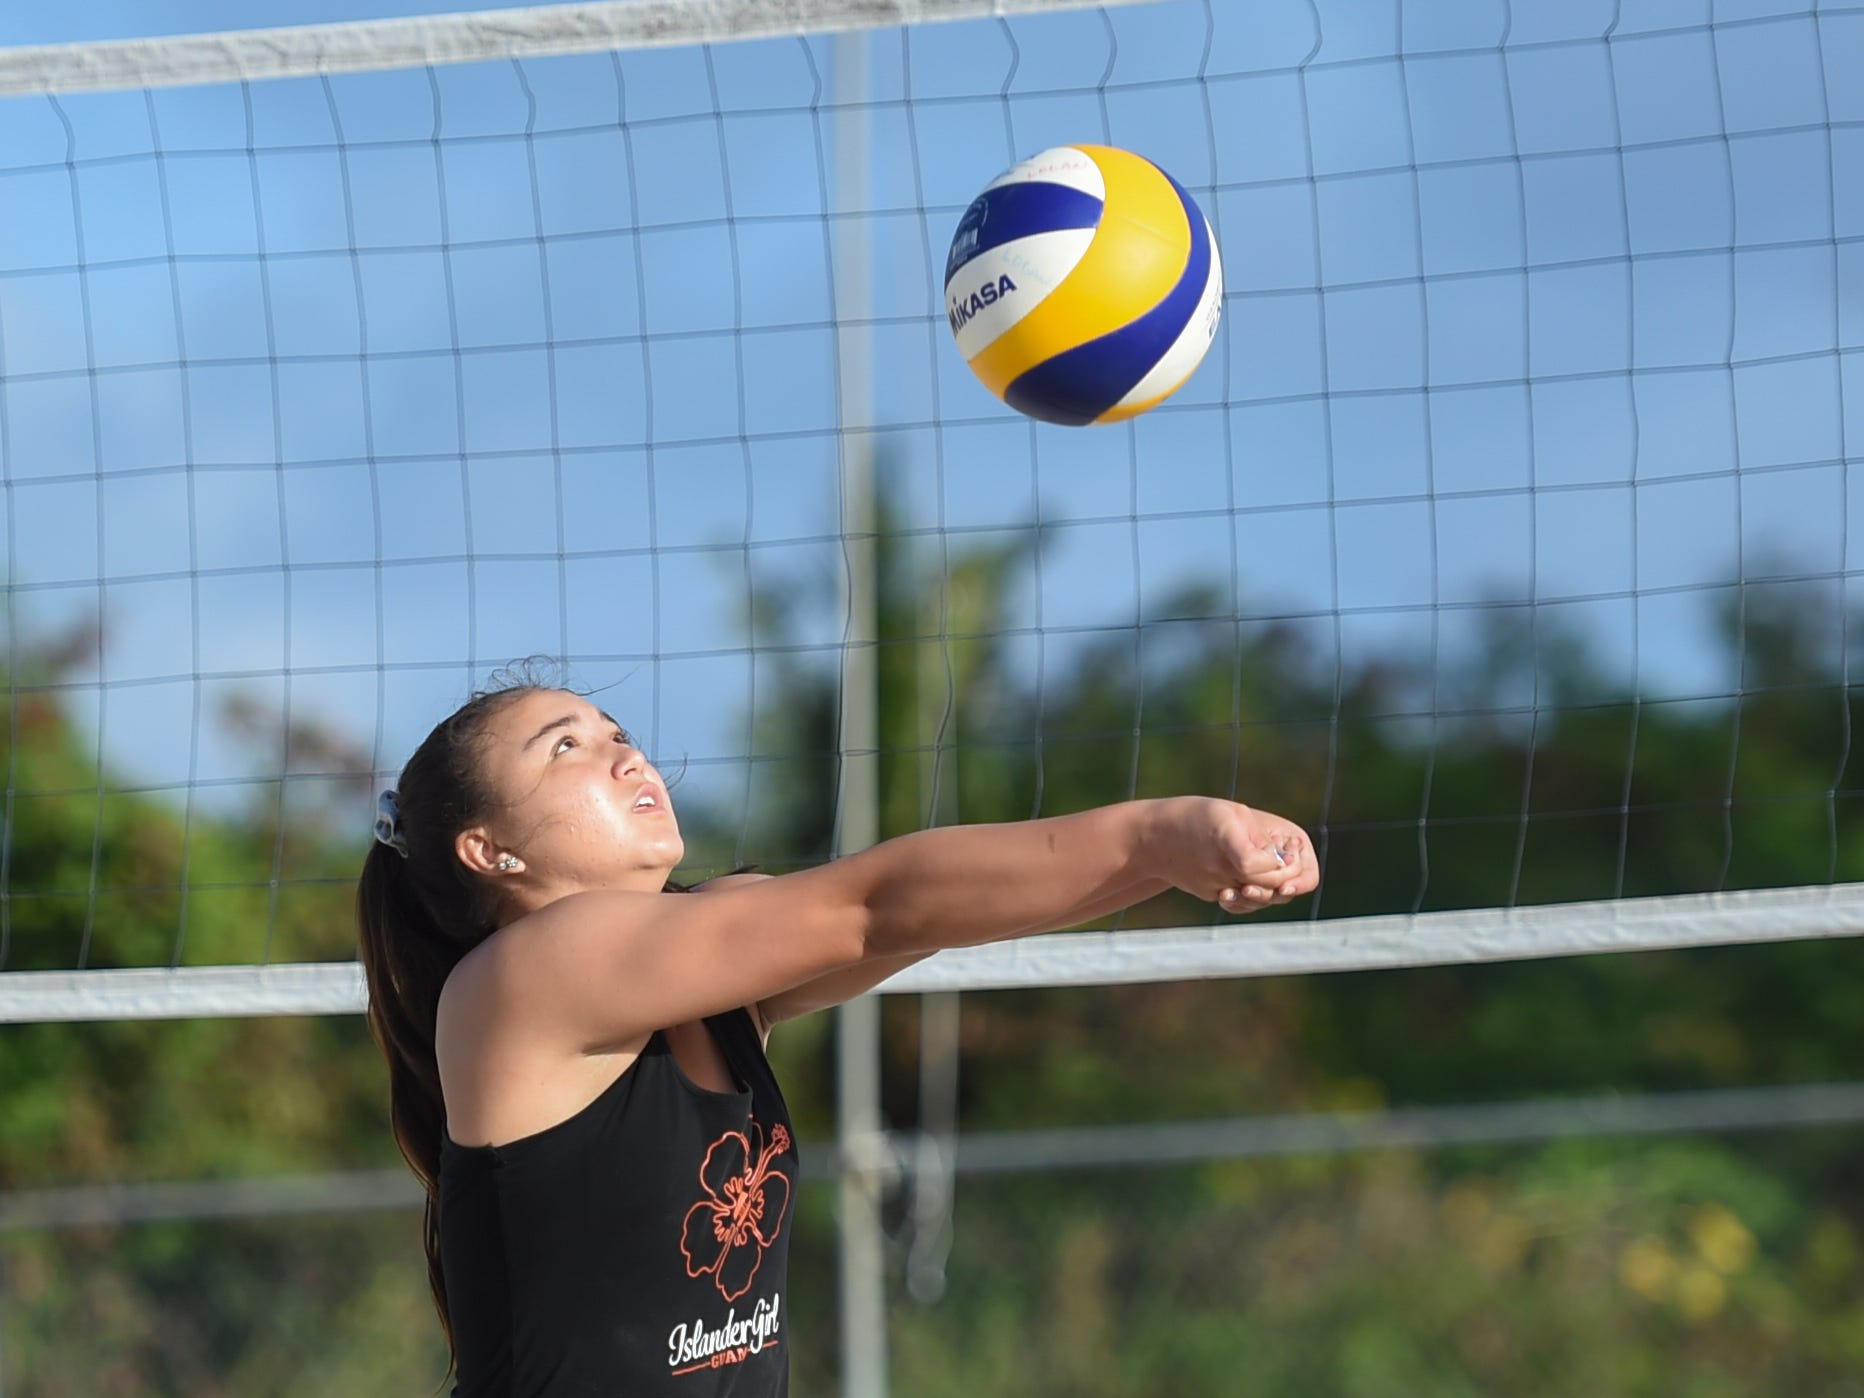 St. John's White's Tylee Shepherd bumps the ball during the IIAAG Beach Volleyball championship game at the Guam Football Association National Training Center in Dededo, March 12, 2019.